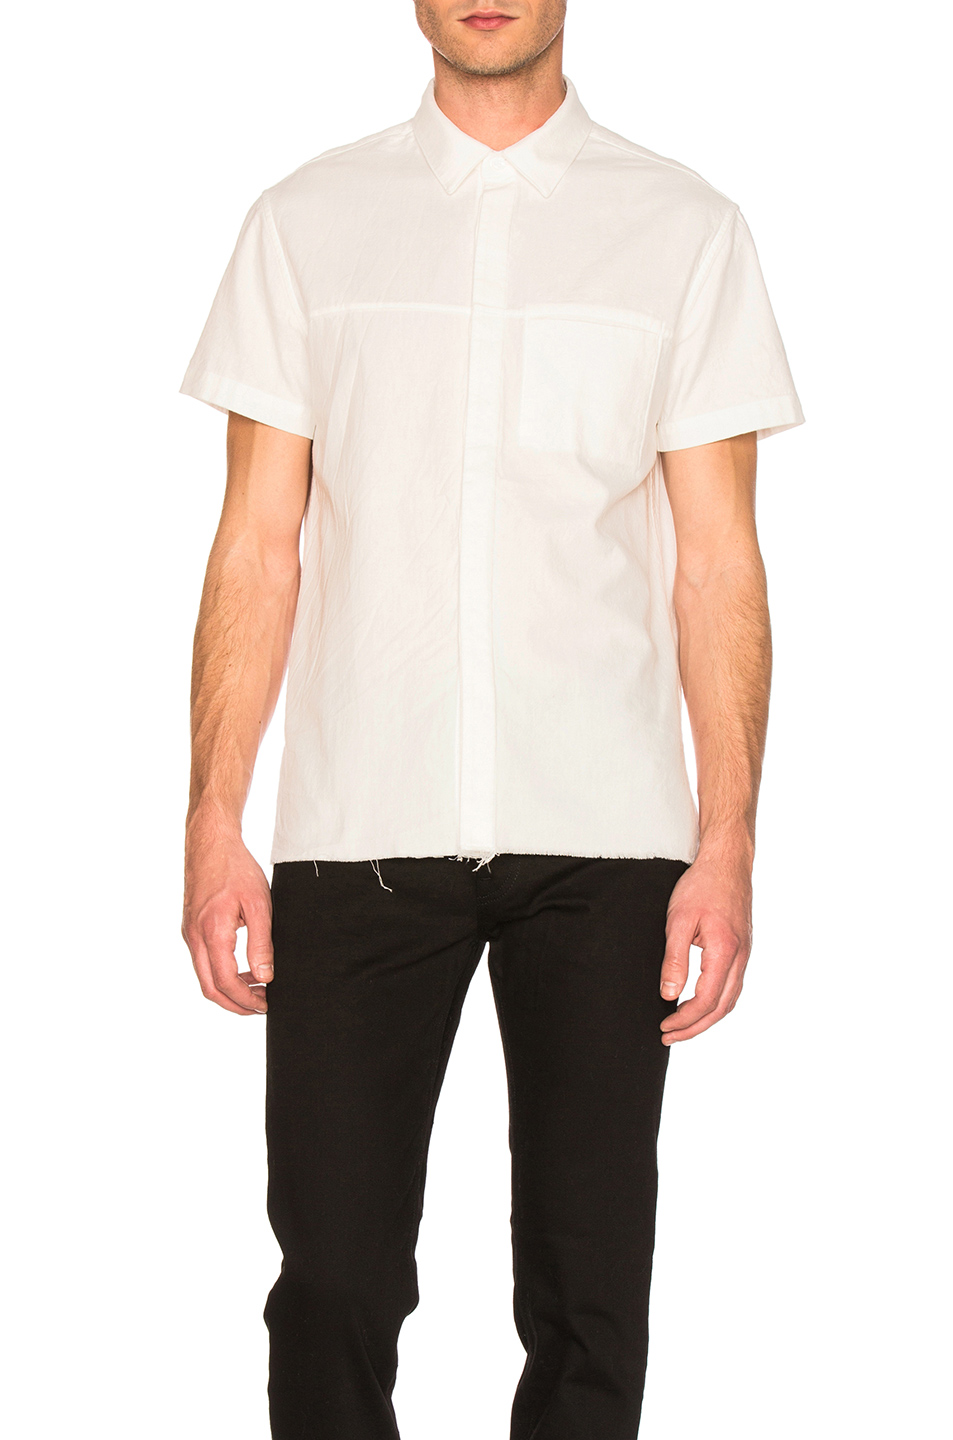 Simon Miller Guhn Shirt in White